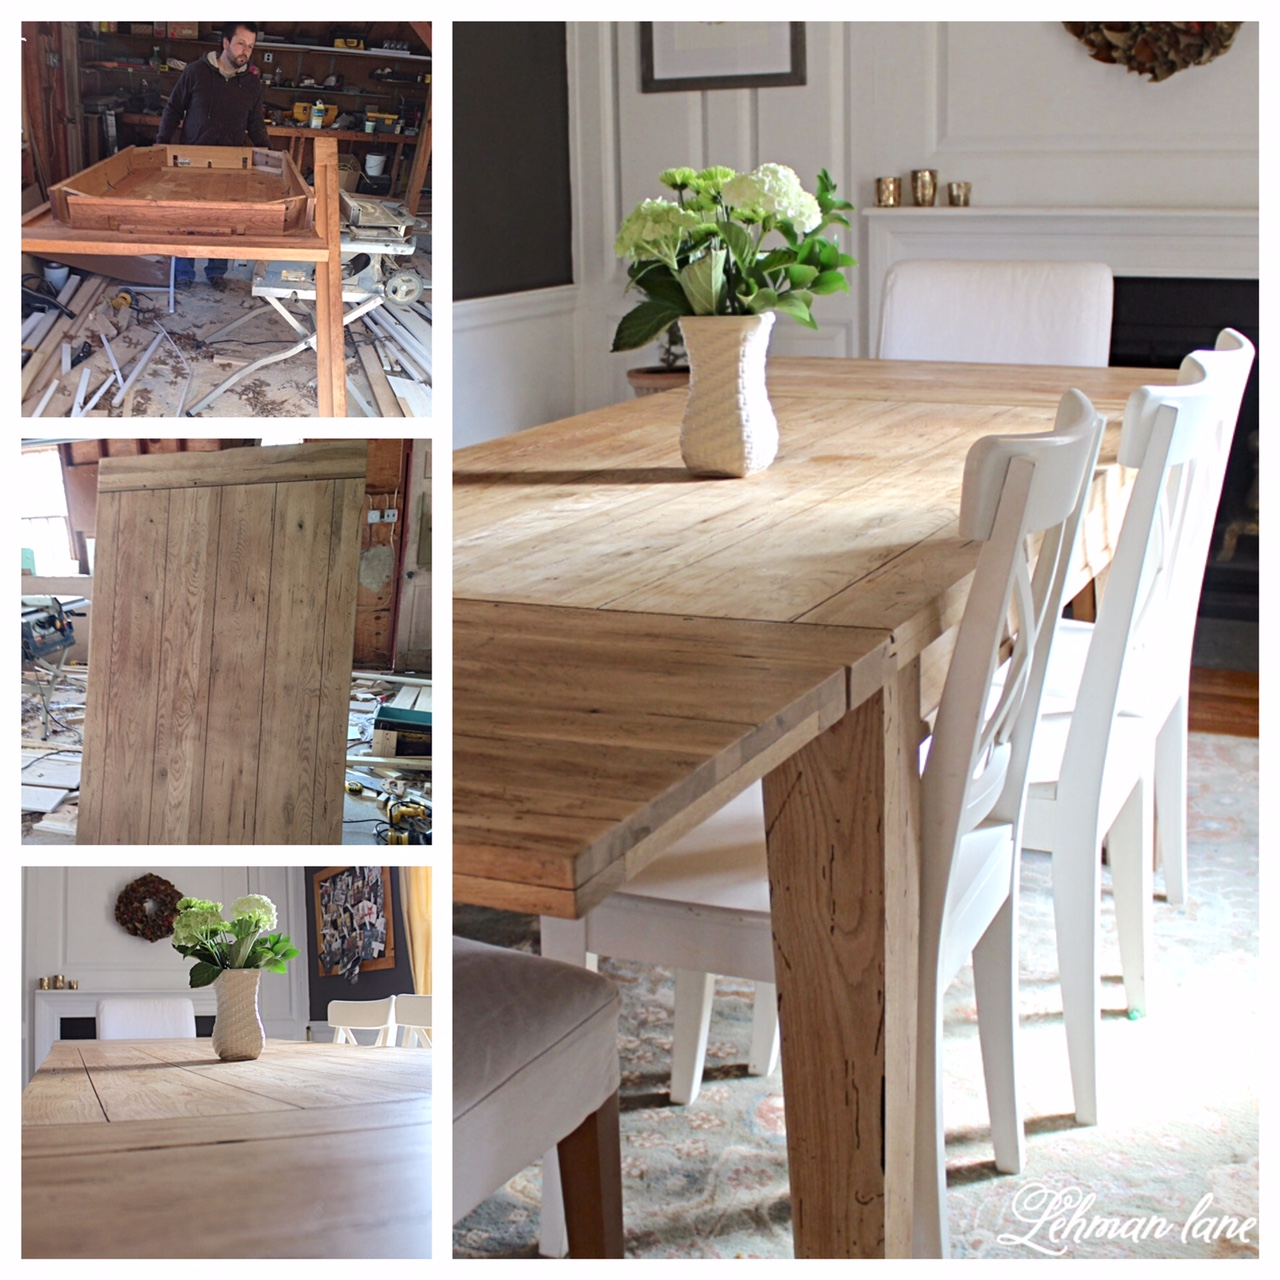 Restoration Hardware Inspired Farmhouse Table   Lehman Lane